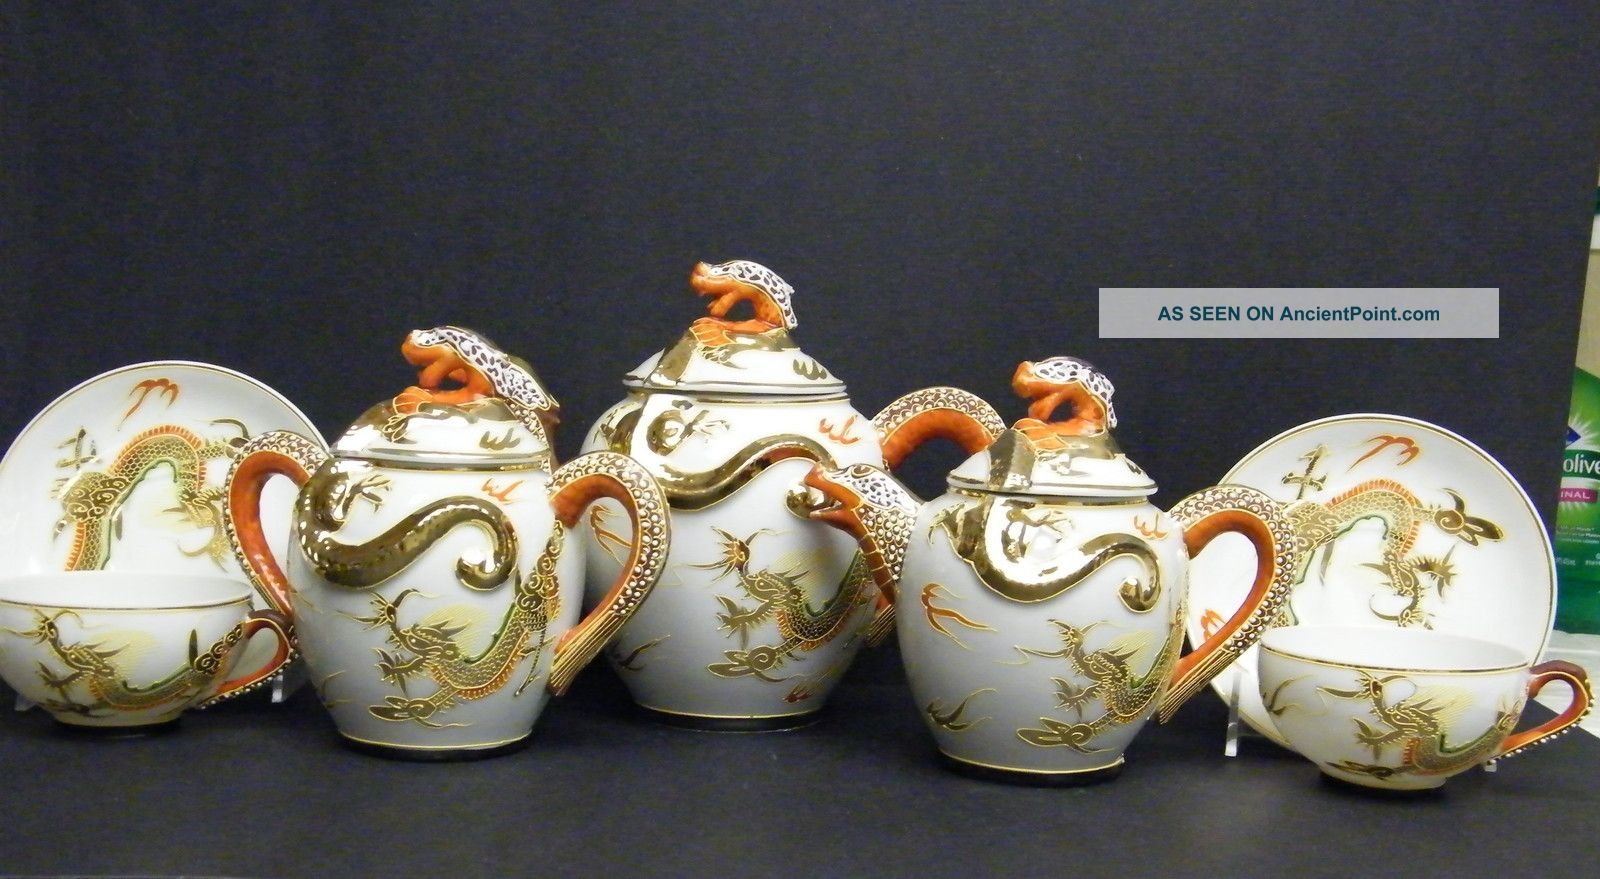 Antique Japanese Tea Sets With Dragon Antique Geisha Girl Dragon Tea